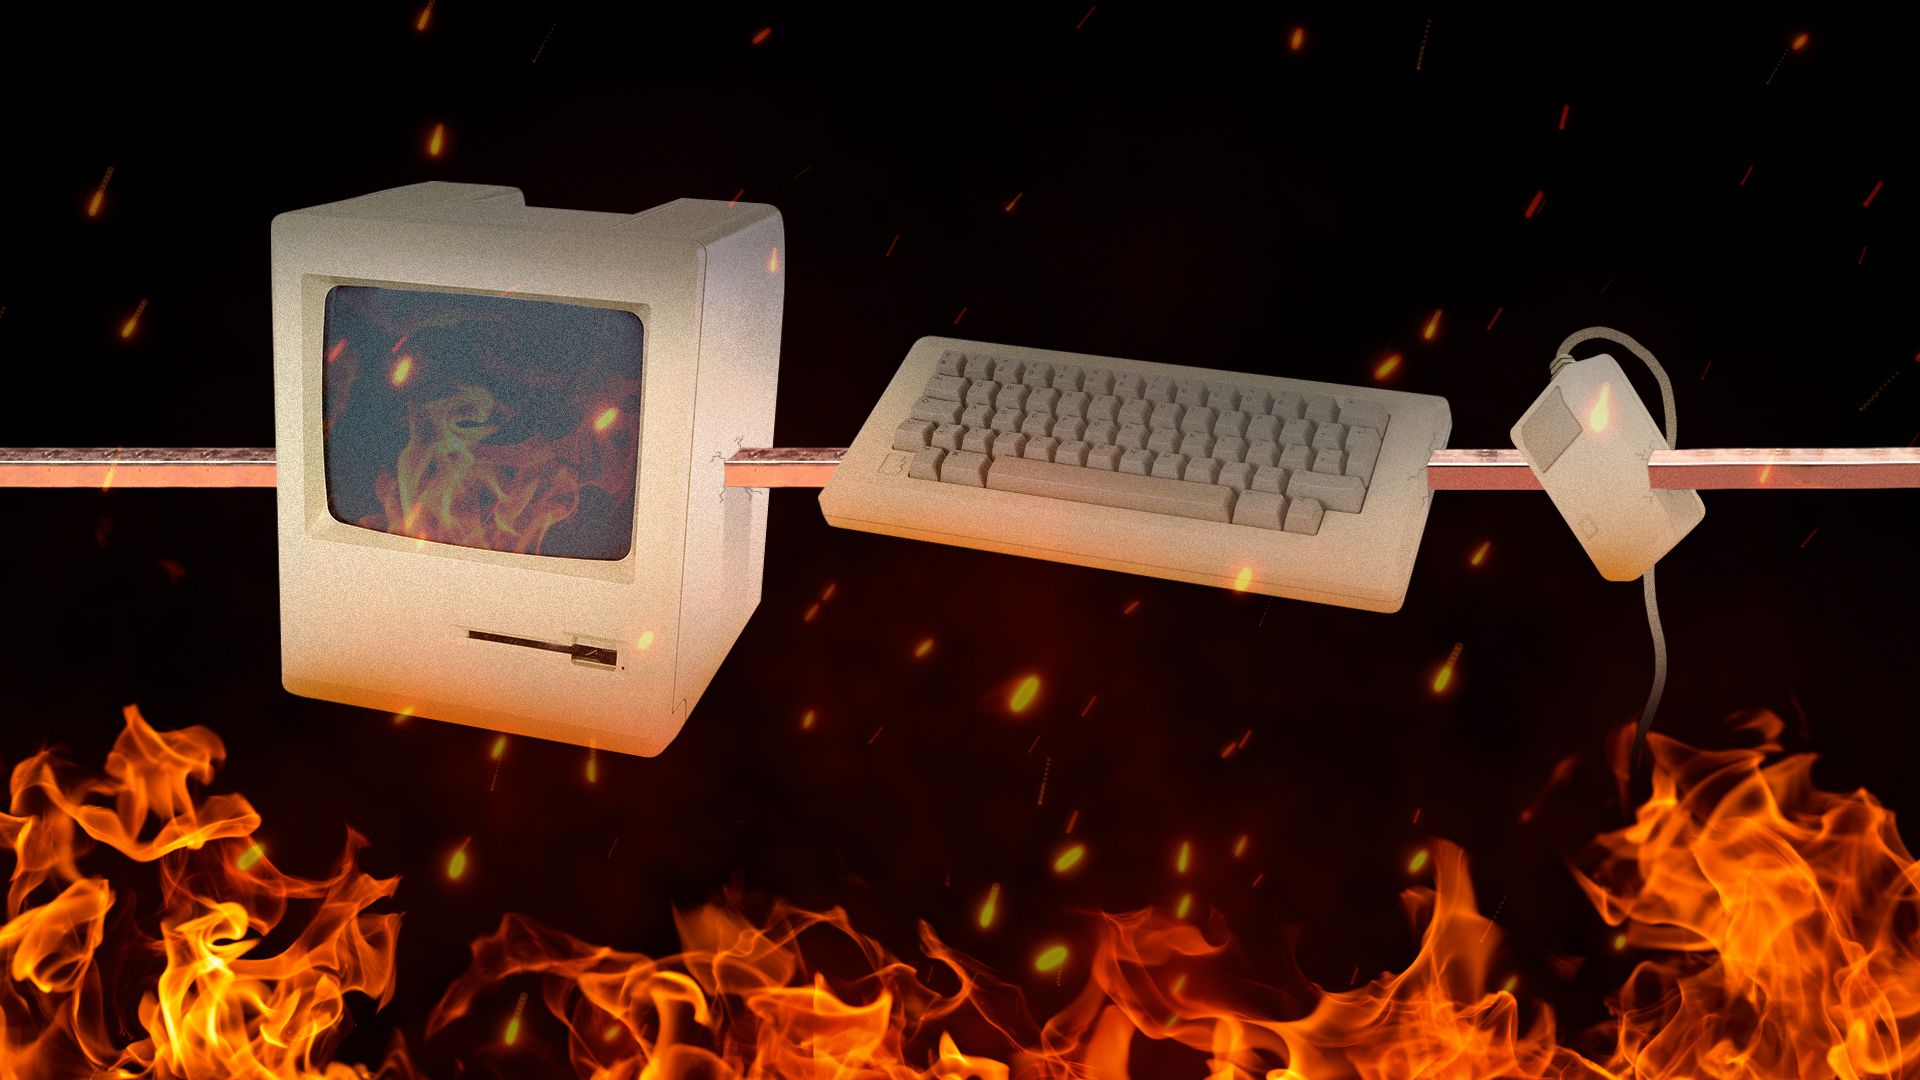 As techlash heats up again, here's who's stoking the fire thumbnail